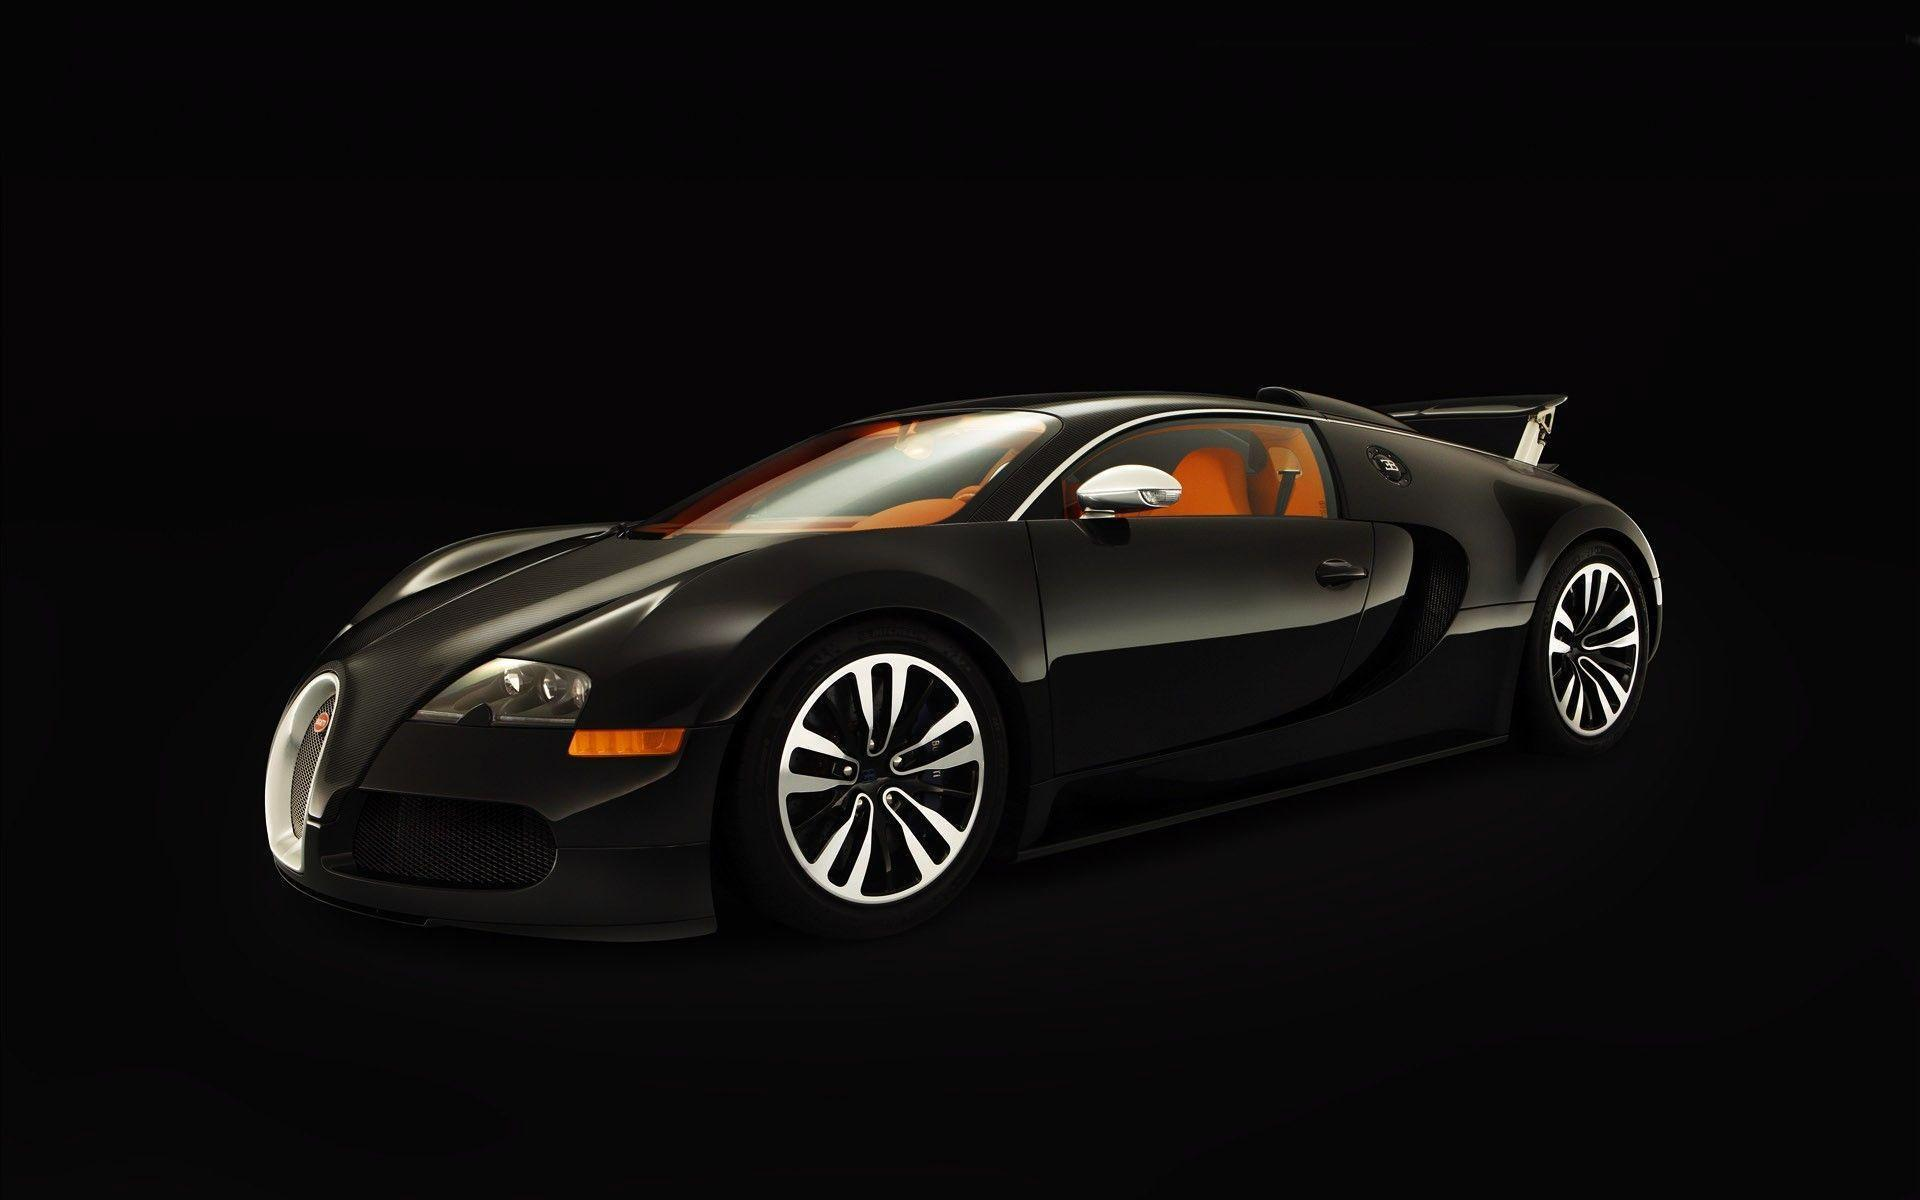 2015 Bugatti Veyron Grand Sport Backgrounds And Wallpapers